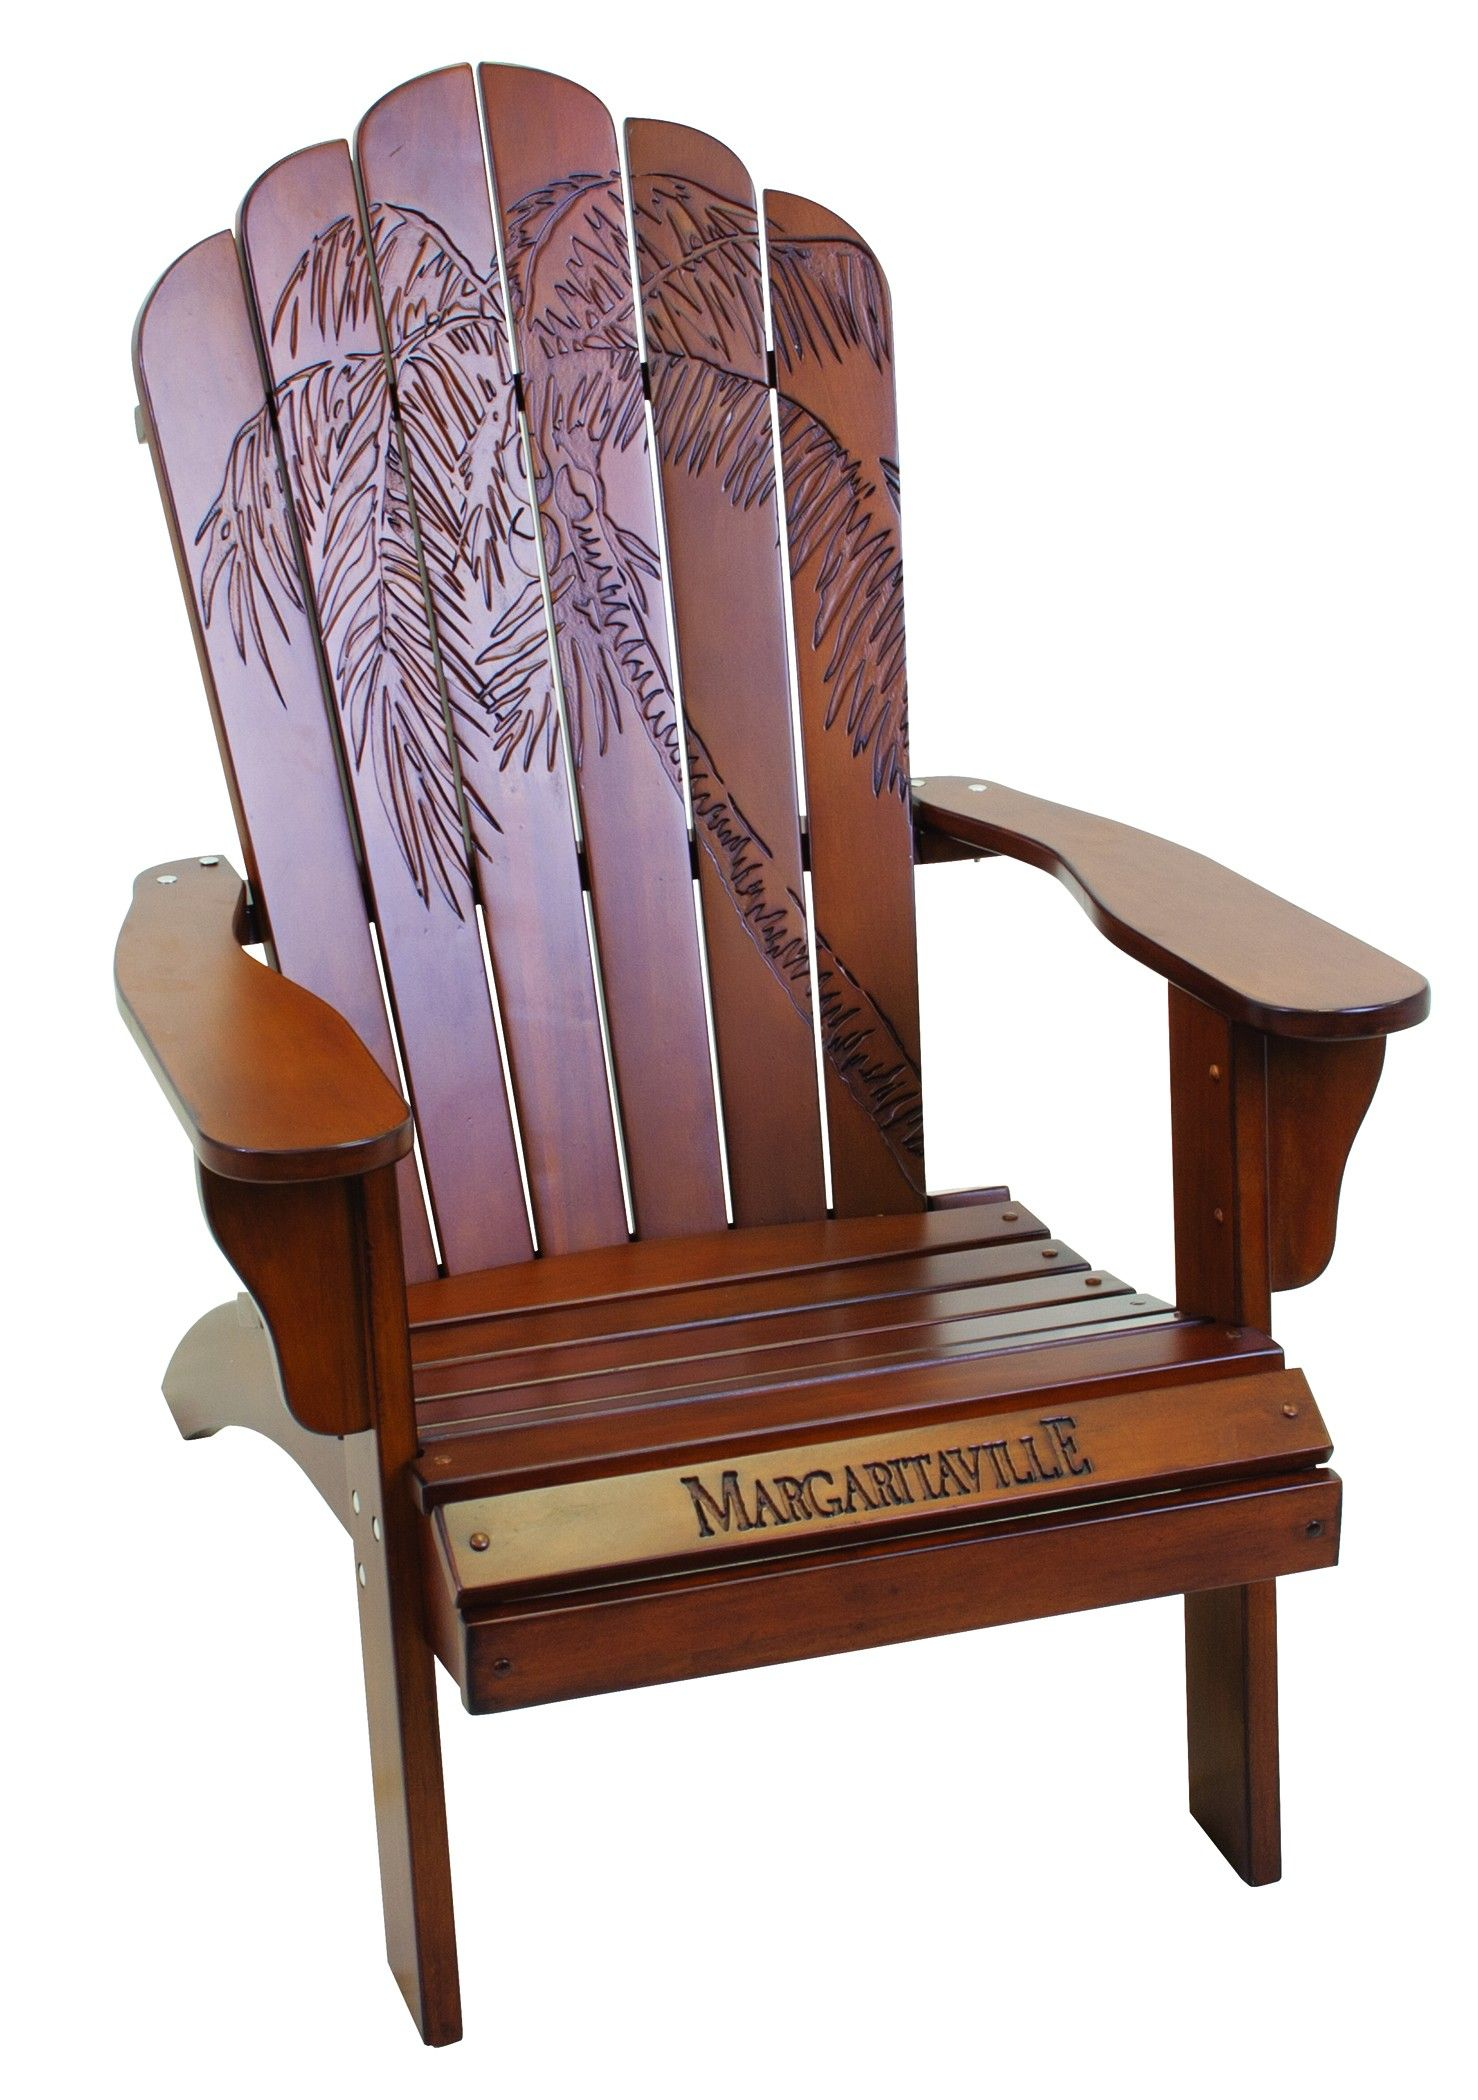 Margaritaville Chairs For Sale Big Bean Bag Walmart Adirondack Chair Wood Carved Palm Frond Cherry